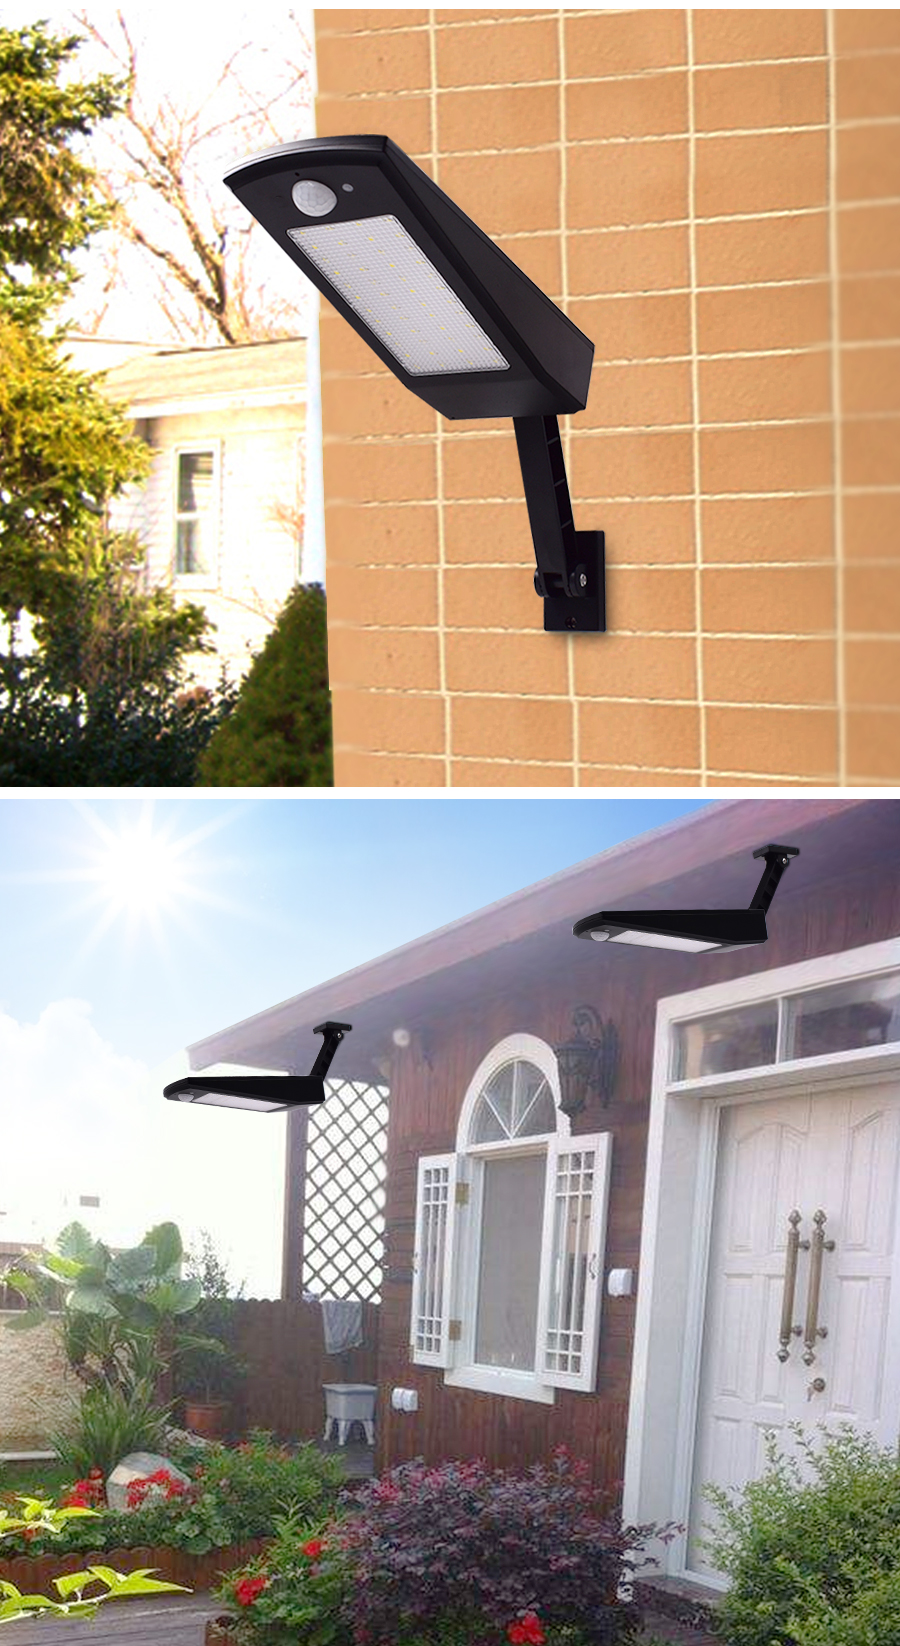 Waterproof and Motion Sensor Outdoor Solar Light with 48 LED and Rotatable Pole for Stairs and Yard 14